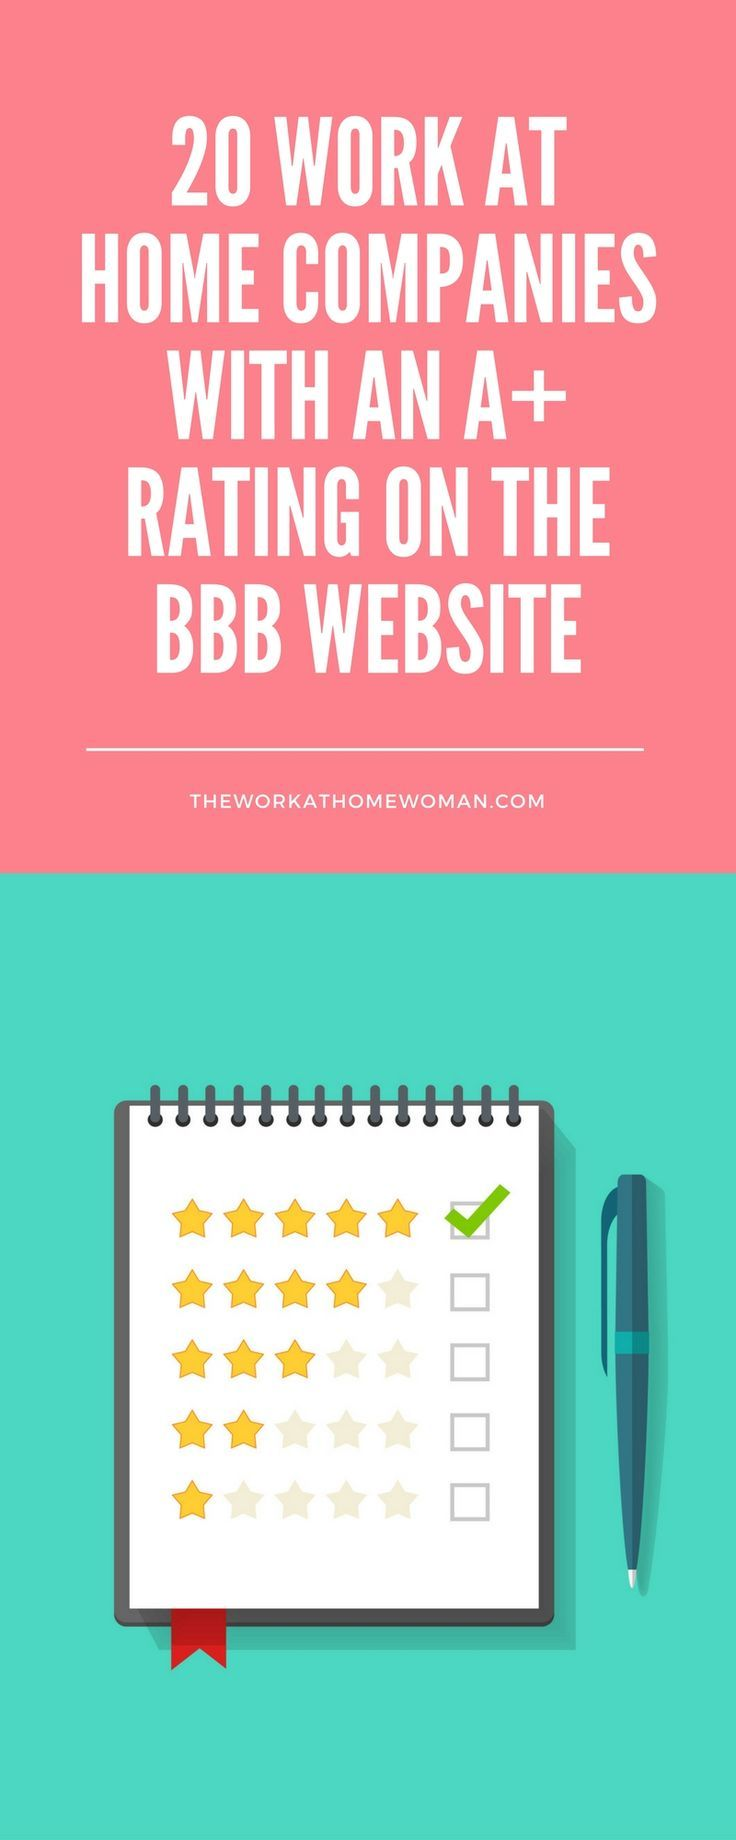 20 WorkatHome Companies with an A+ Rating on the BBB